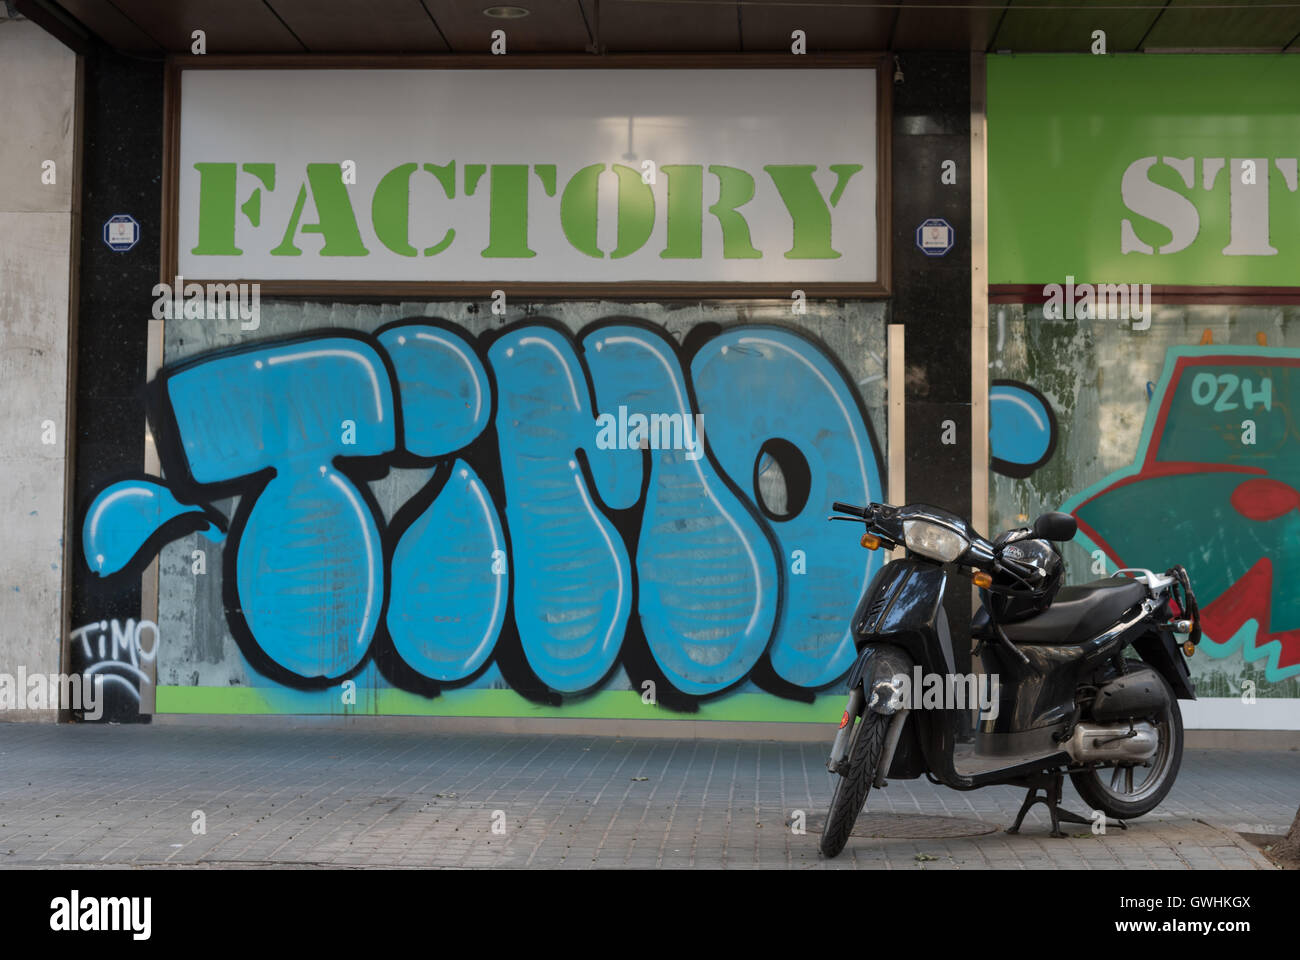 Graffiti wall barcelona - Graffiti Covered Shop Front And Motorbike In Barcelona The Store Name Factory And A Tag